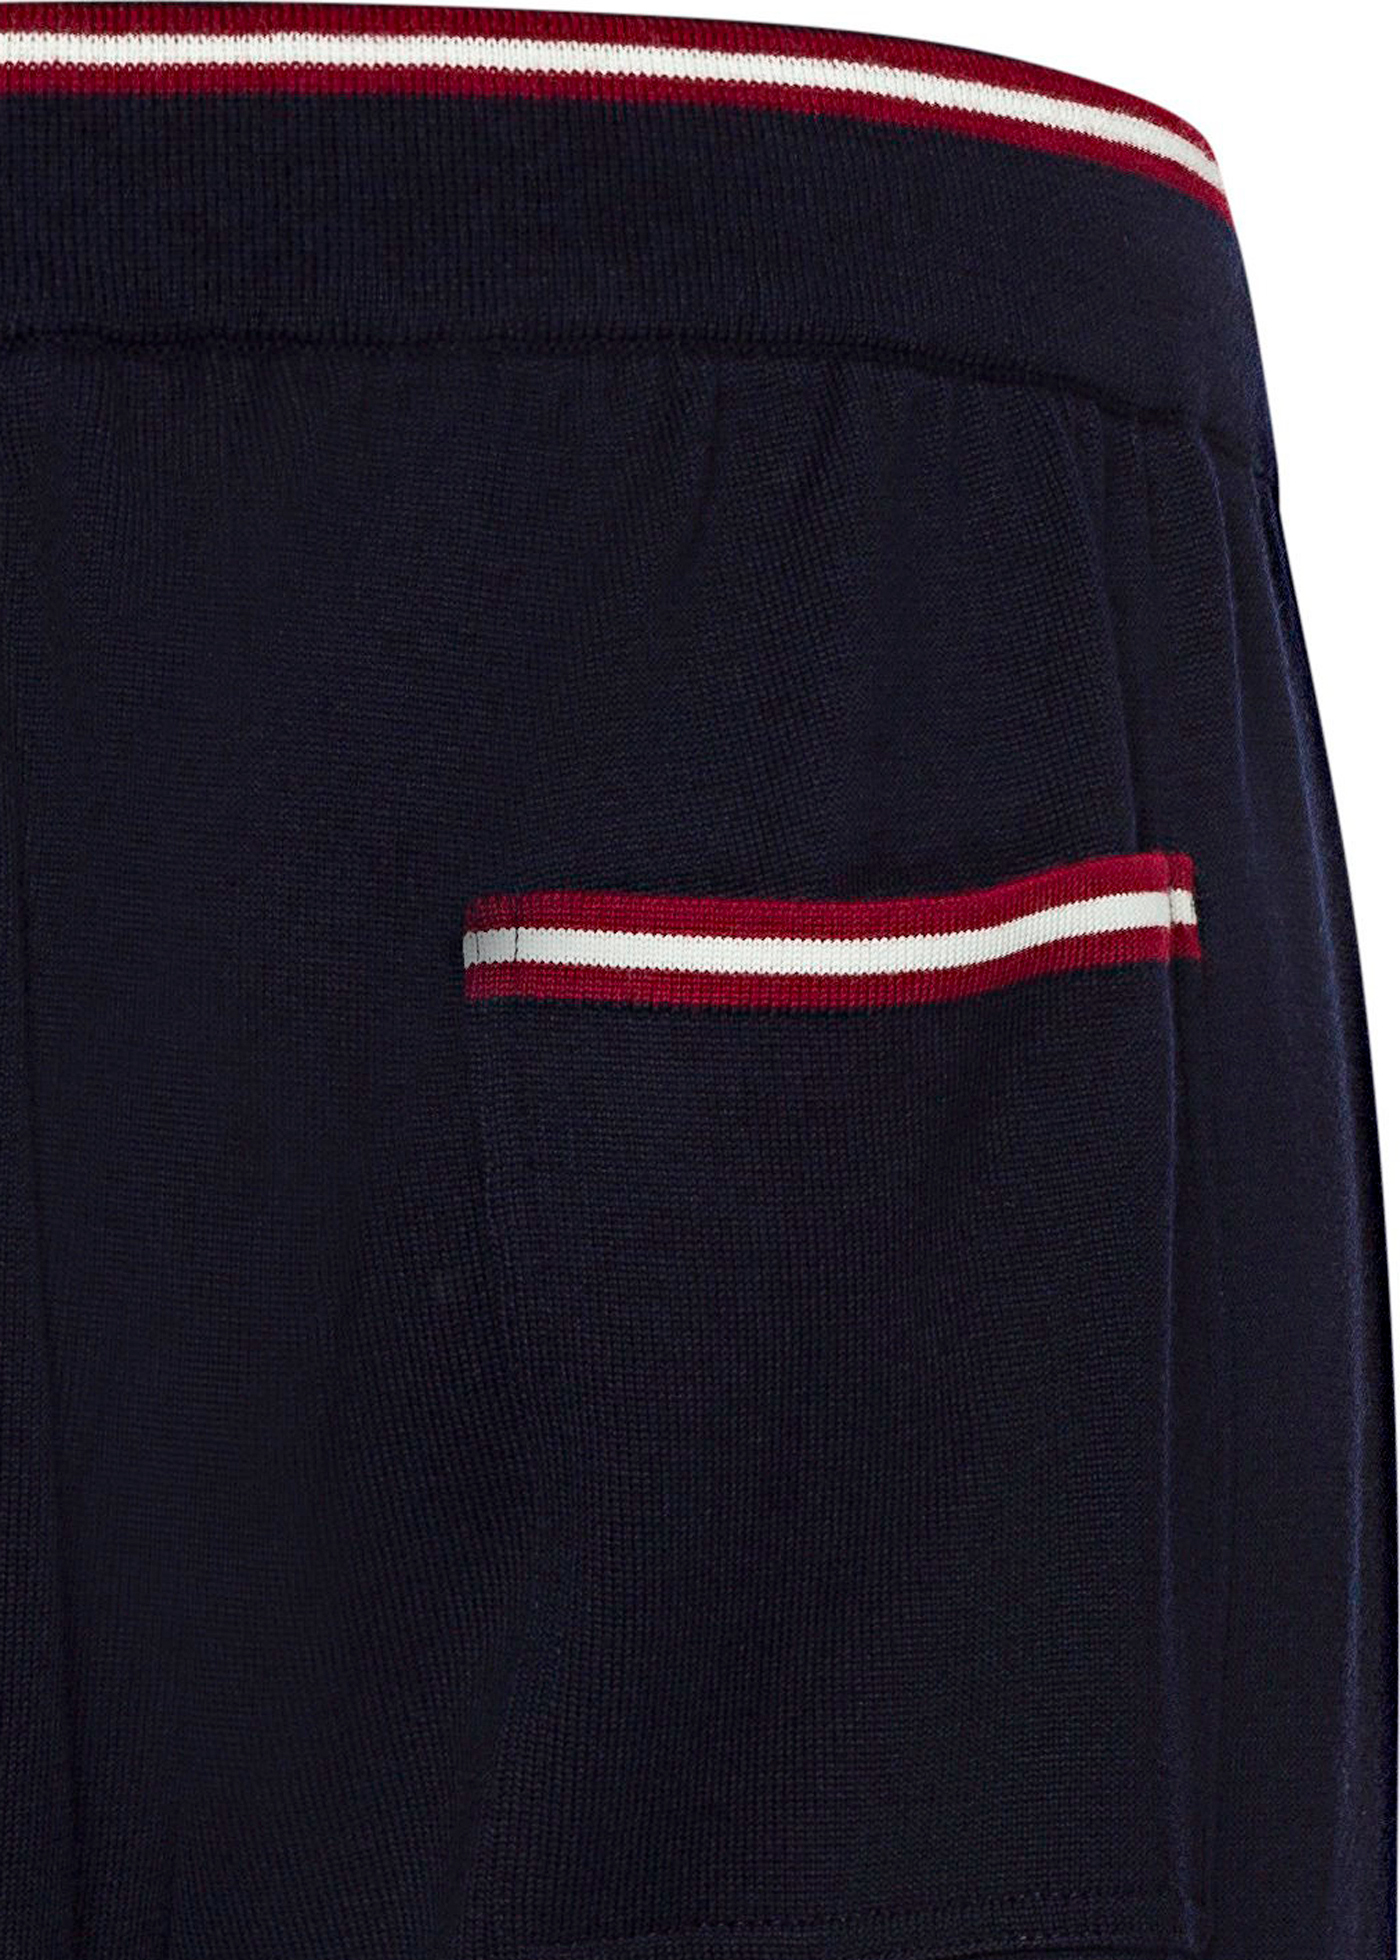 M4LR204K-8S010/750 TROUSERS image number 3